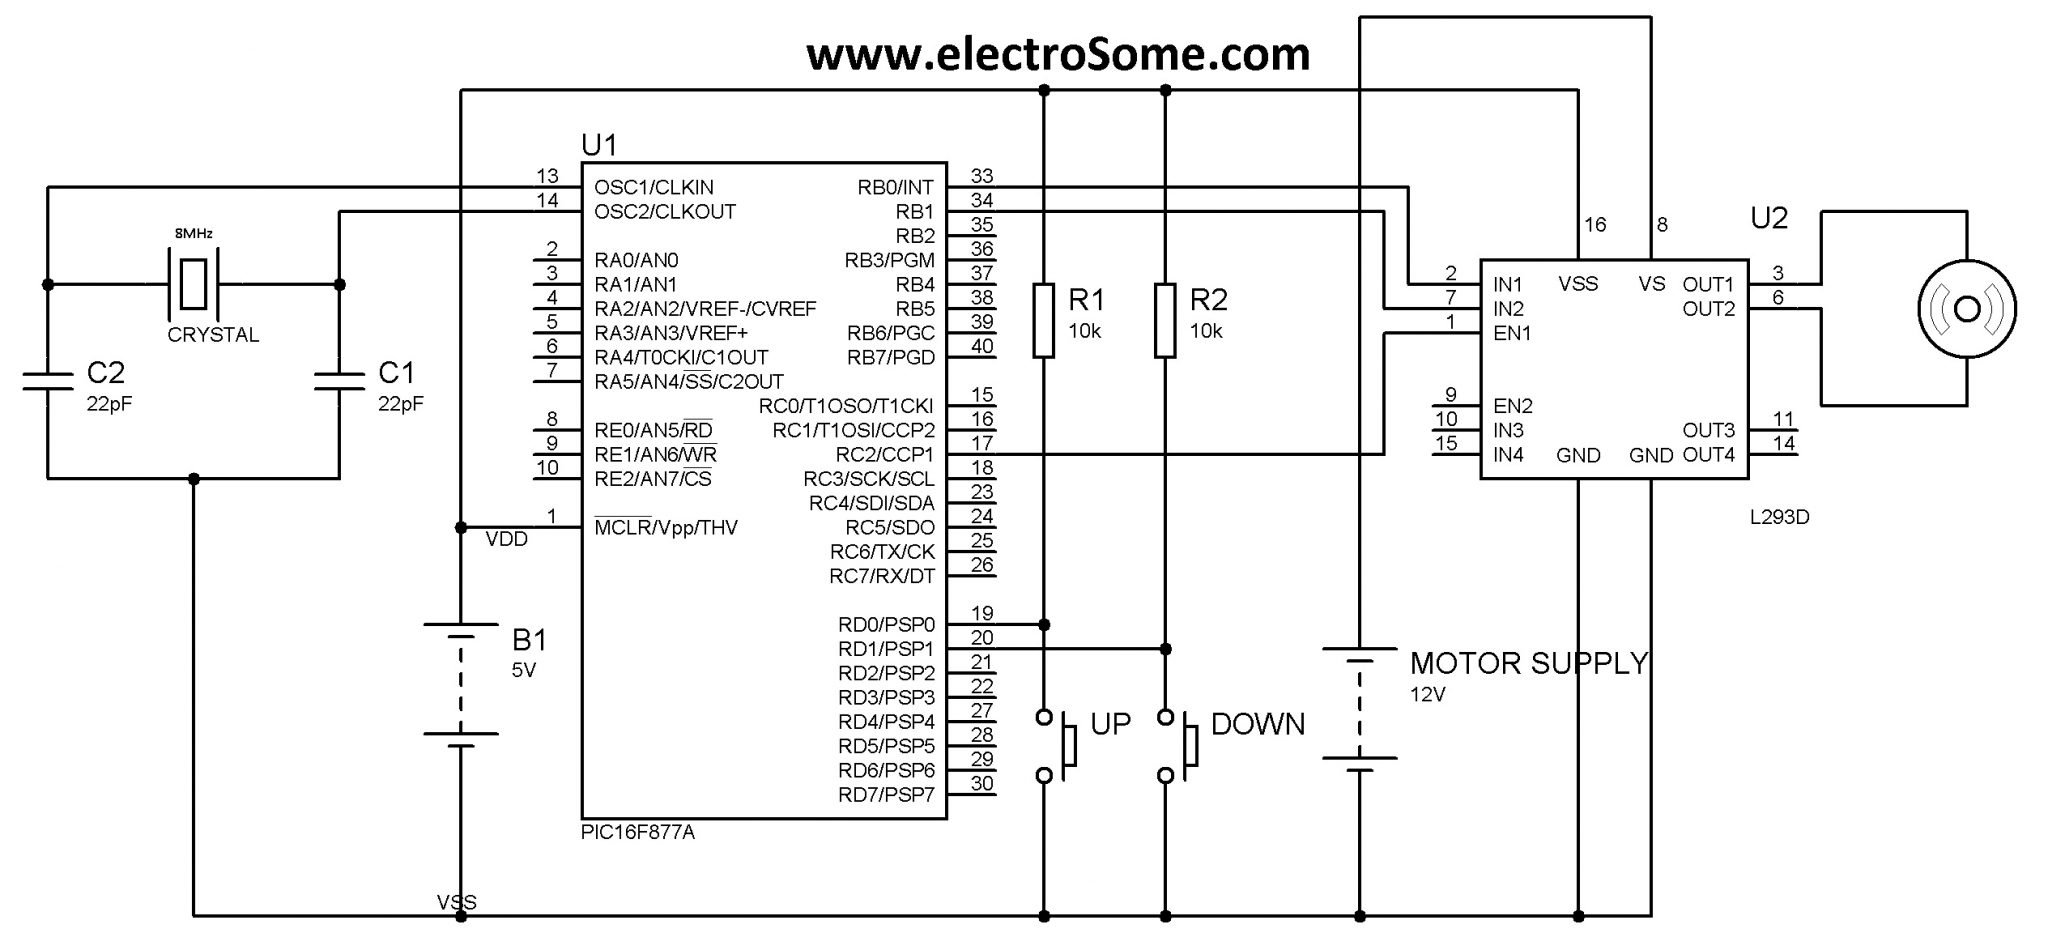 Dc Motor Speed Control Using Pwm With Pic Microcontroller